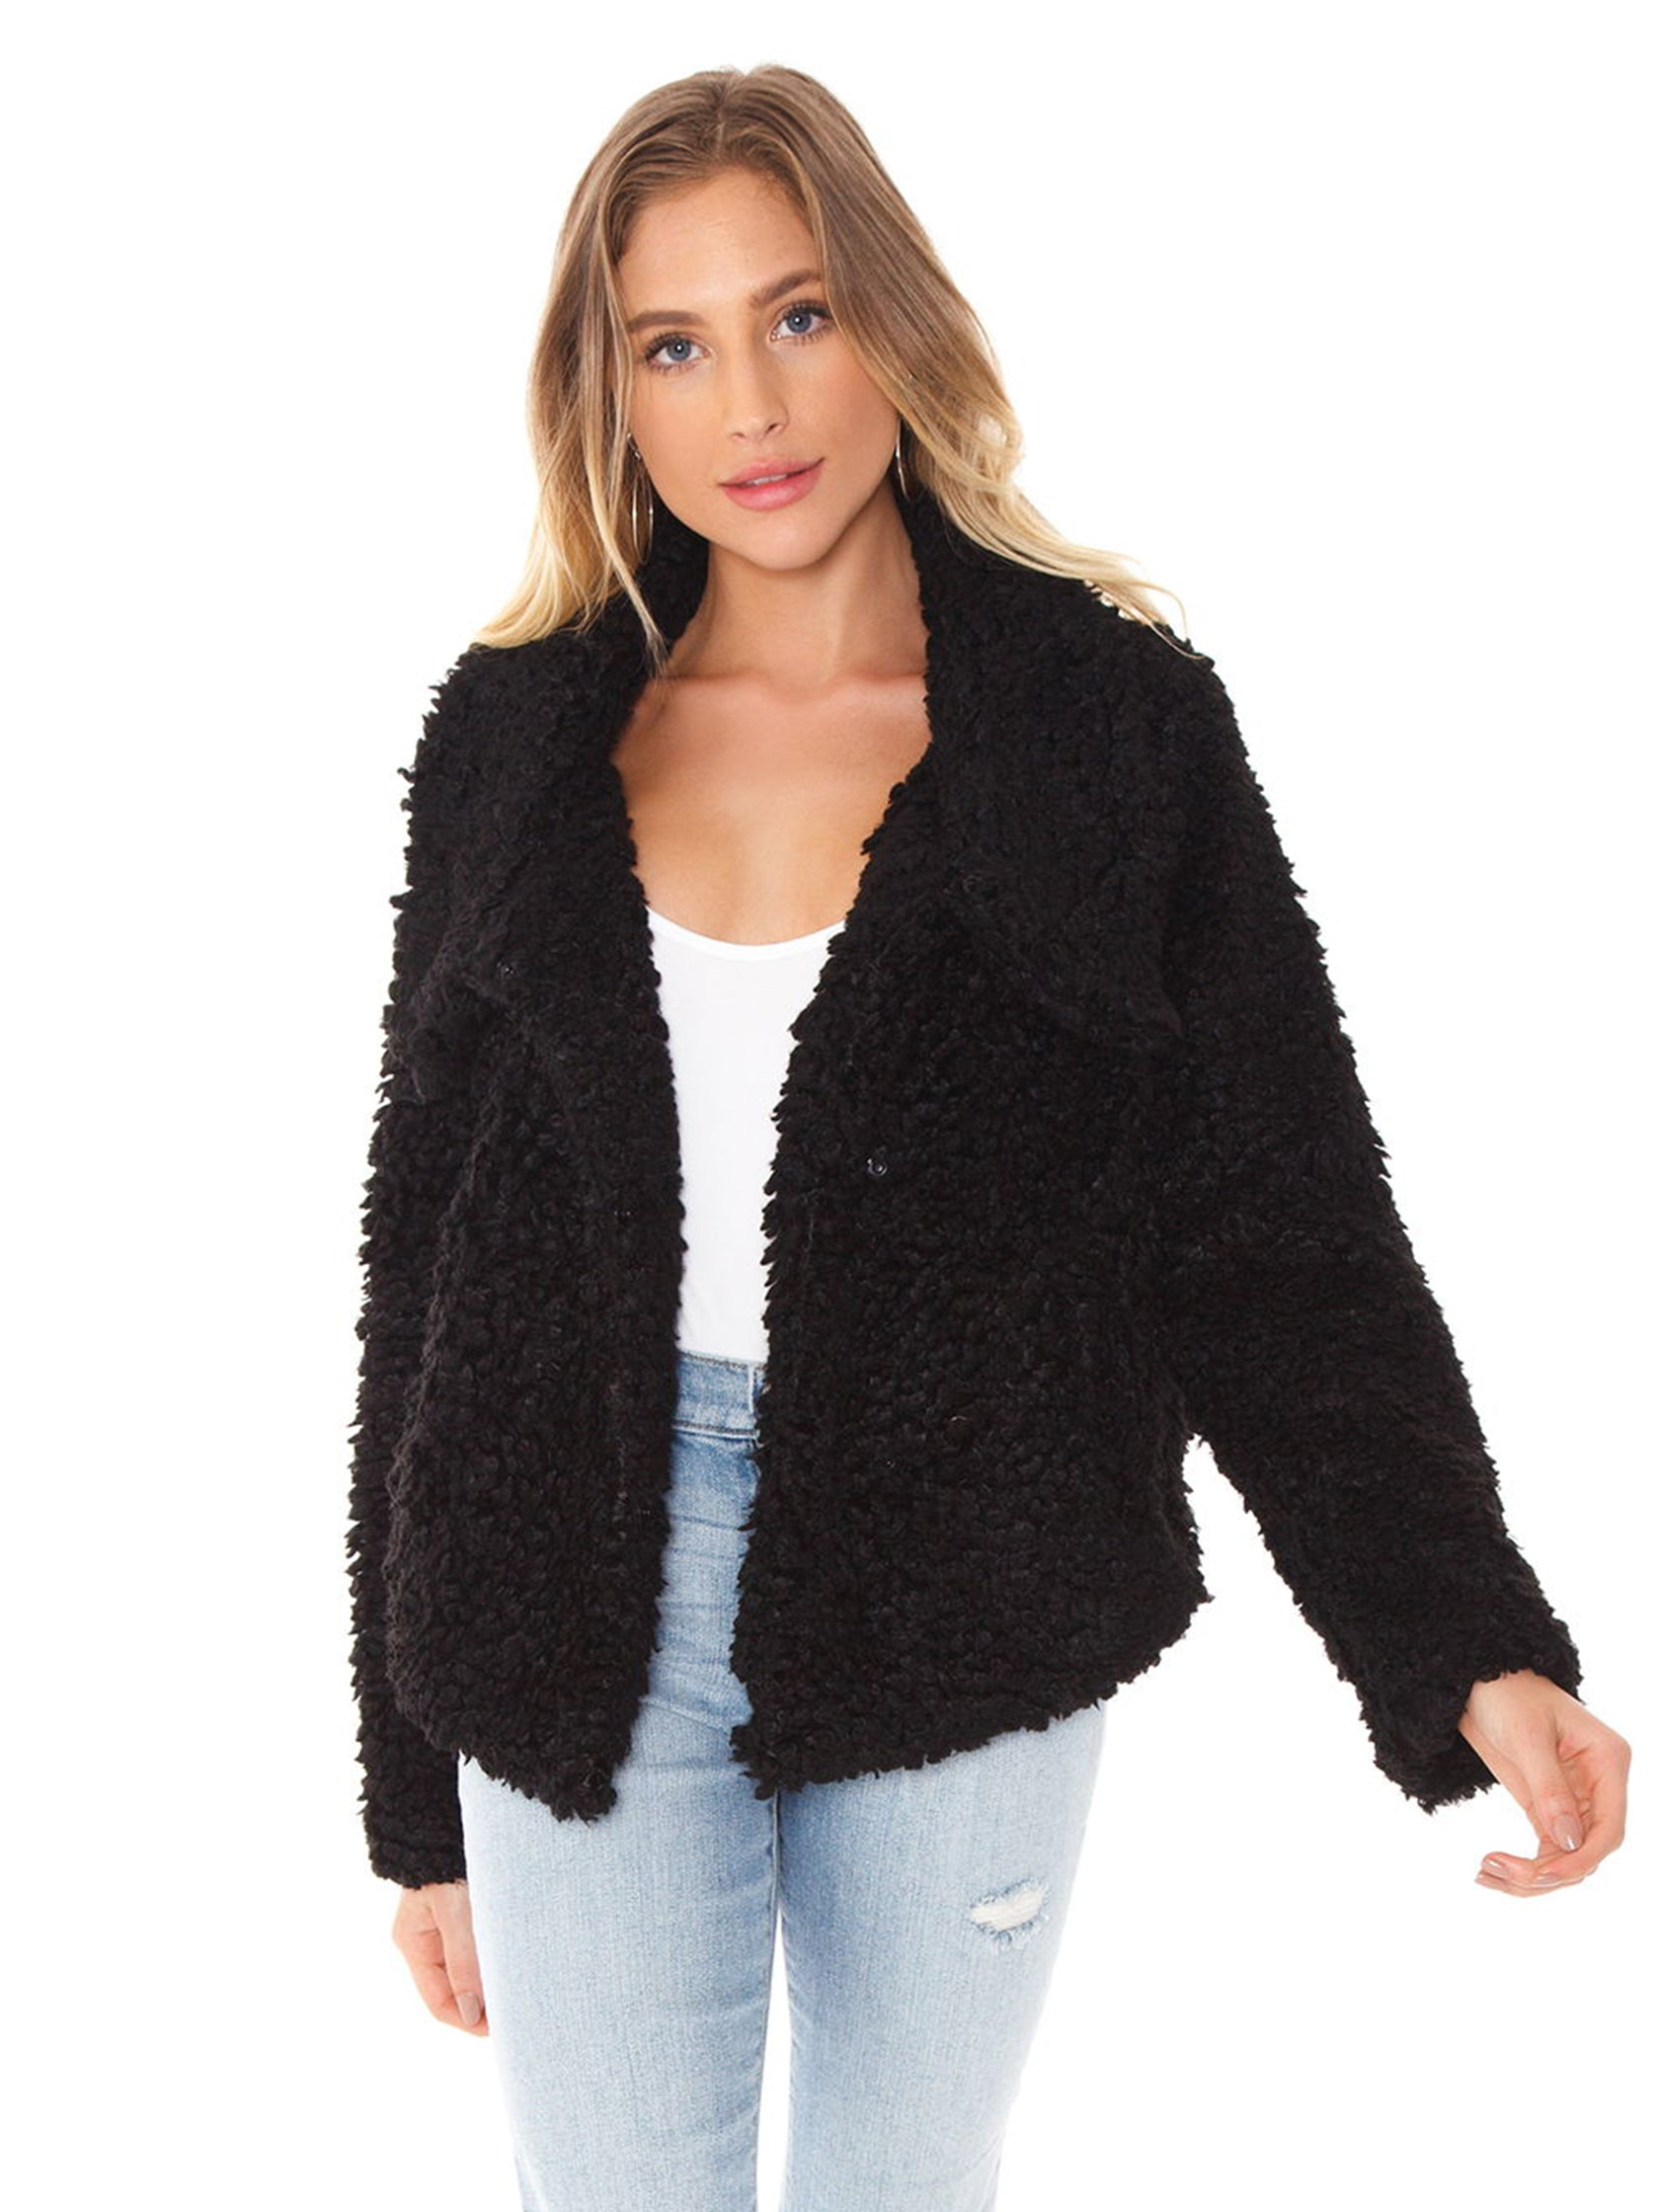 Woman wearing a jacket rental from Bishop + Young called Faux Fur Jacket